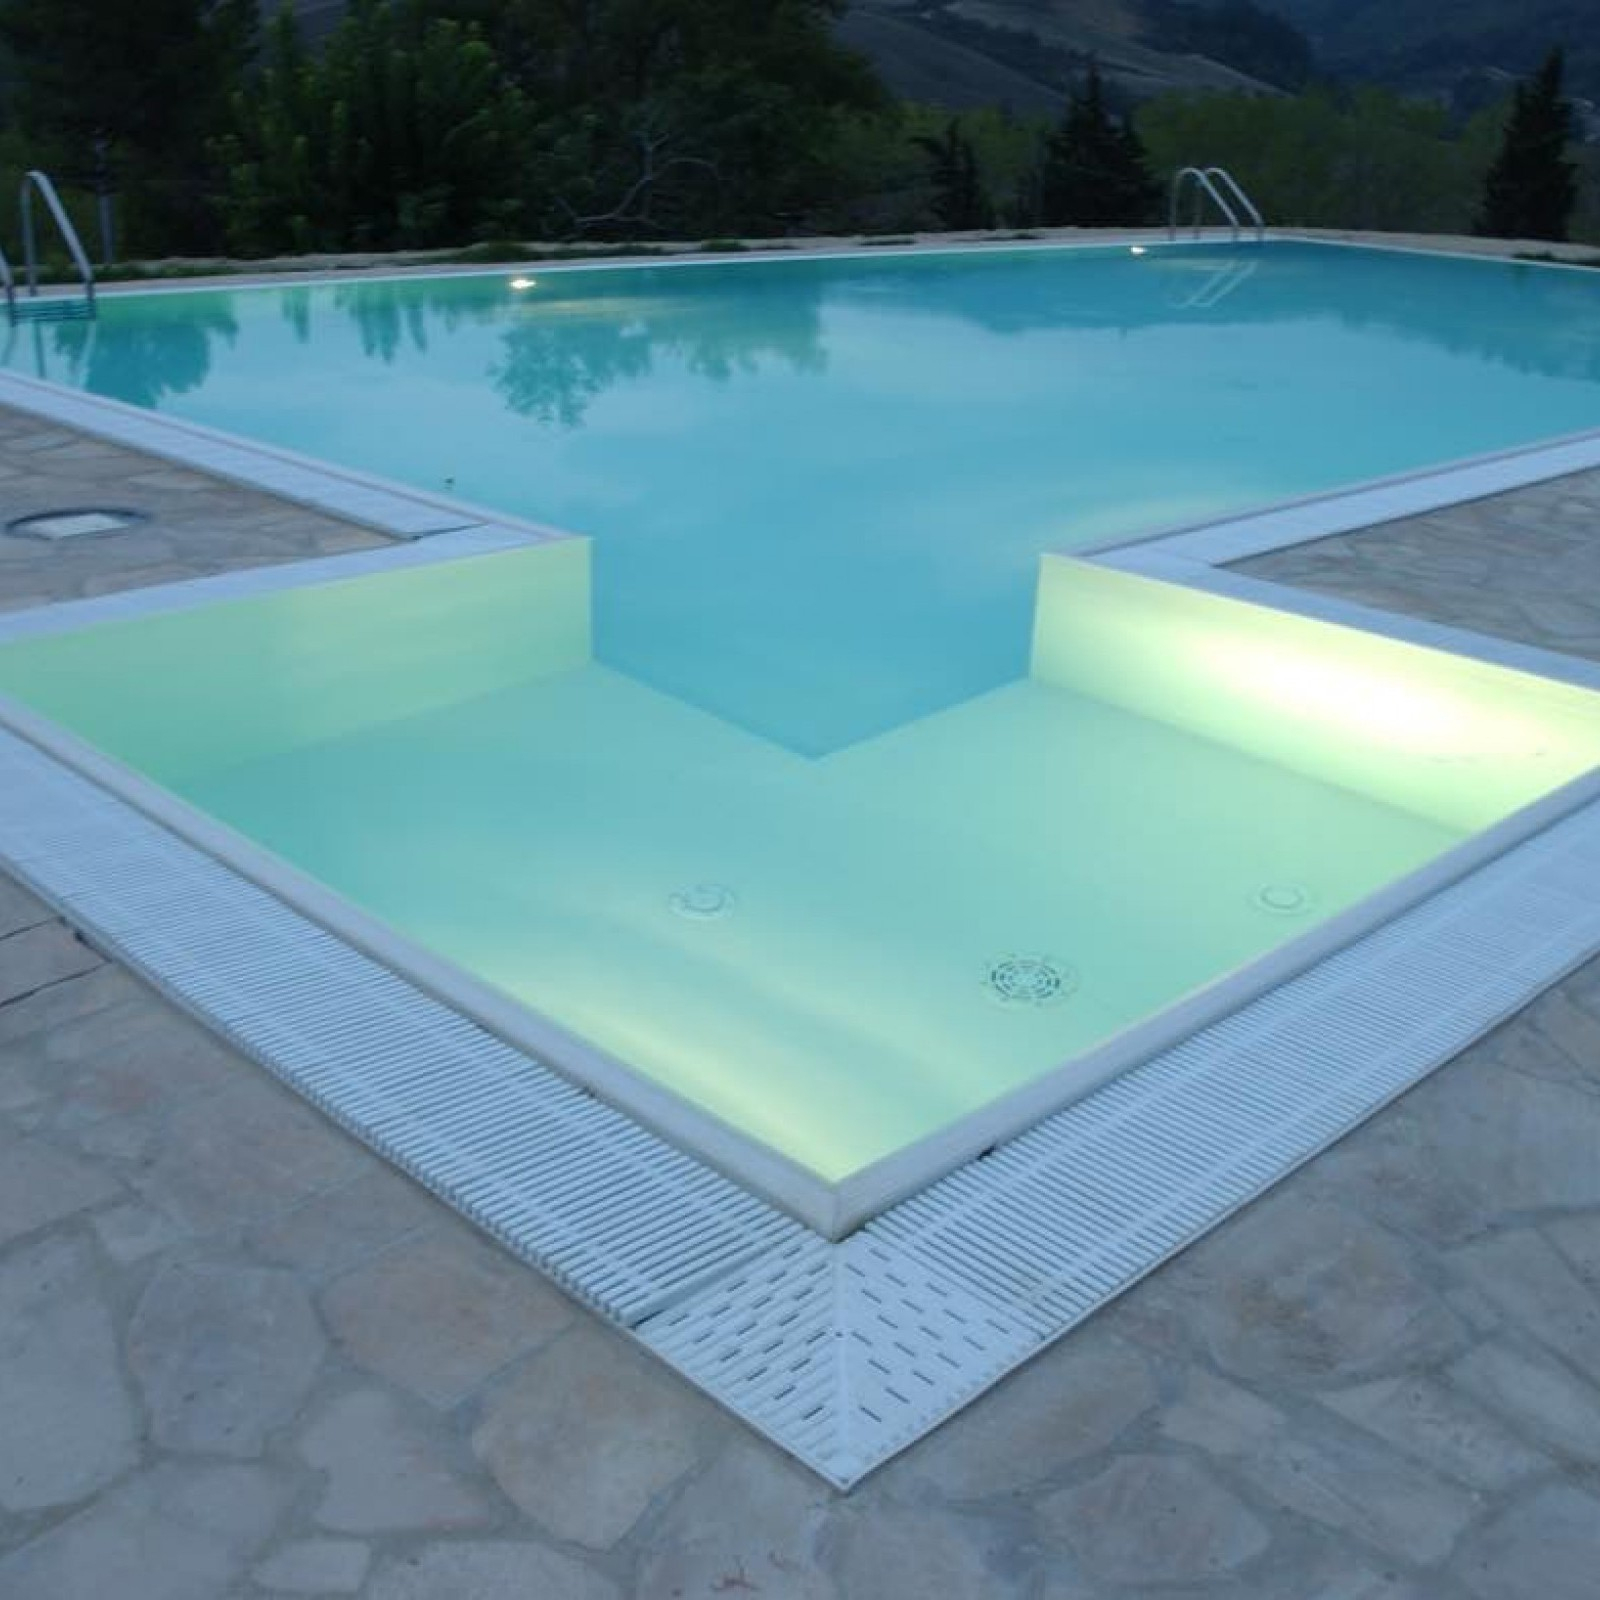 Steela Is The Future Of Modular Steel Pools - Cemi à Piscine Freedom